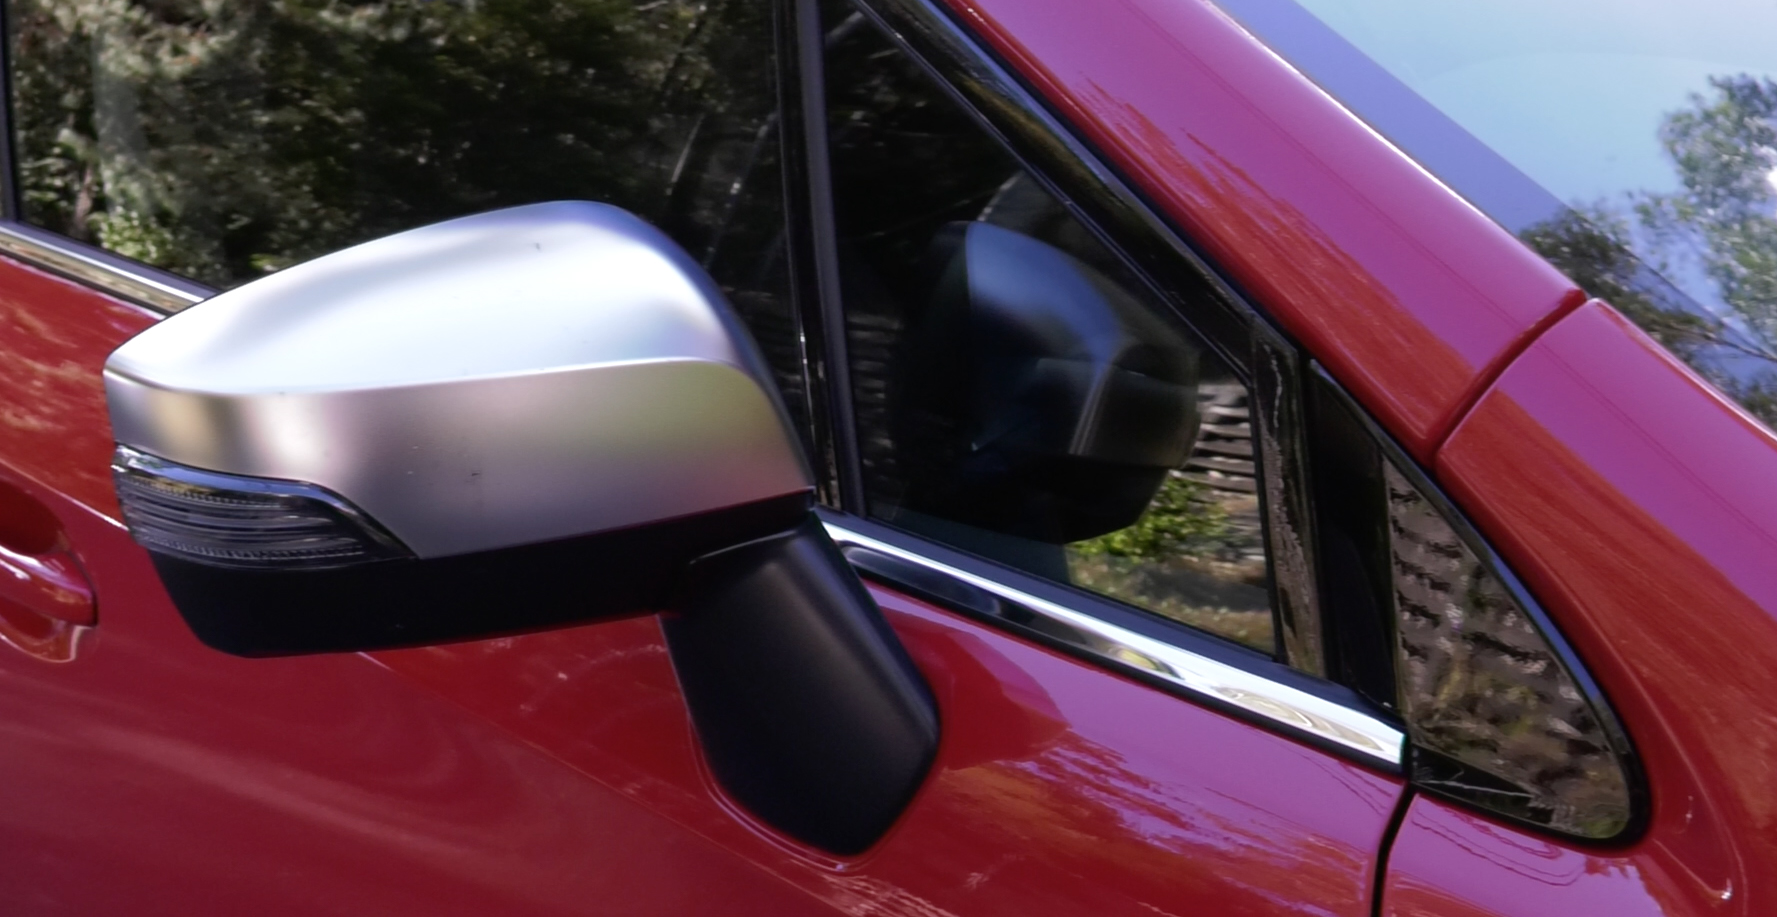 Clever Levorg mirror placement reduces the 'visual mass of the A-pillar and aids driver vision by cutting the blind spot behind the pillar in some situations